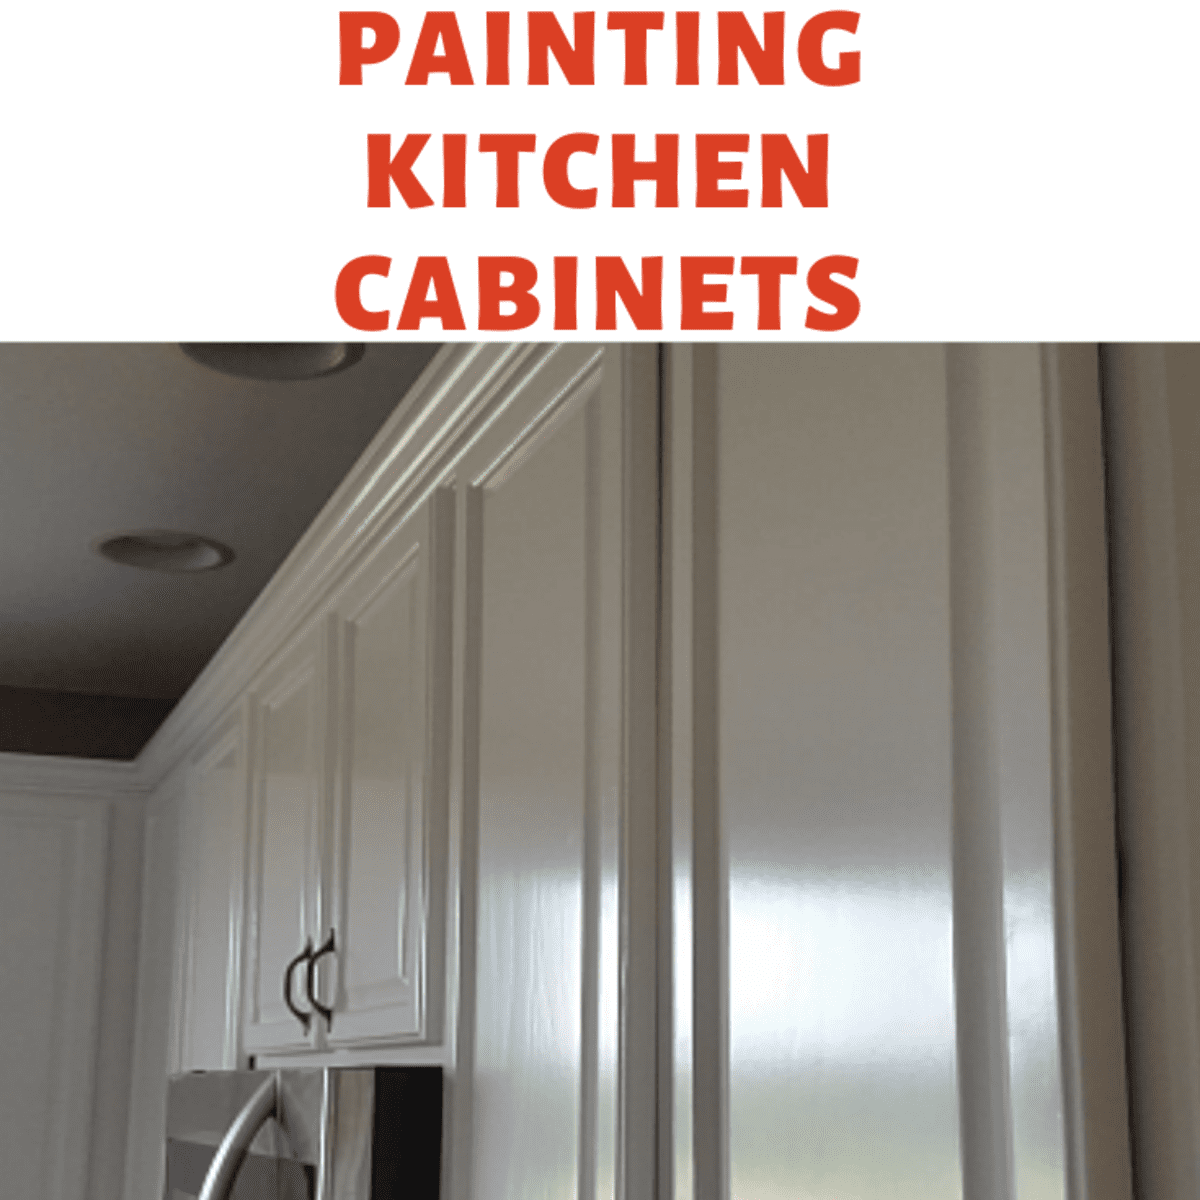 Spray Painting Kitchen Cabinets, How To Paint Kitchen Cabinets White With A Sprayer